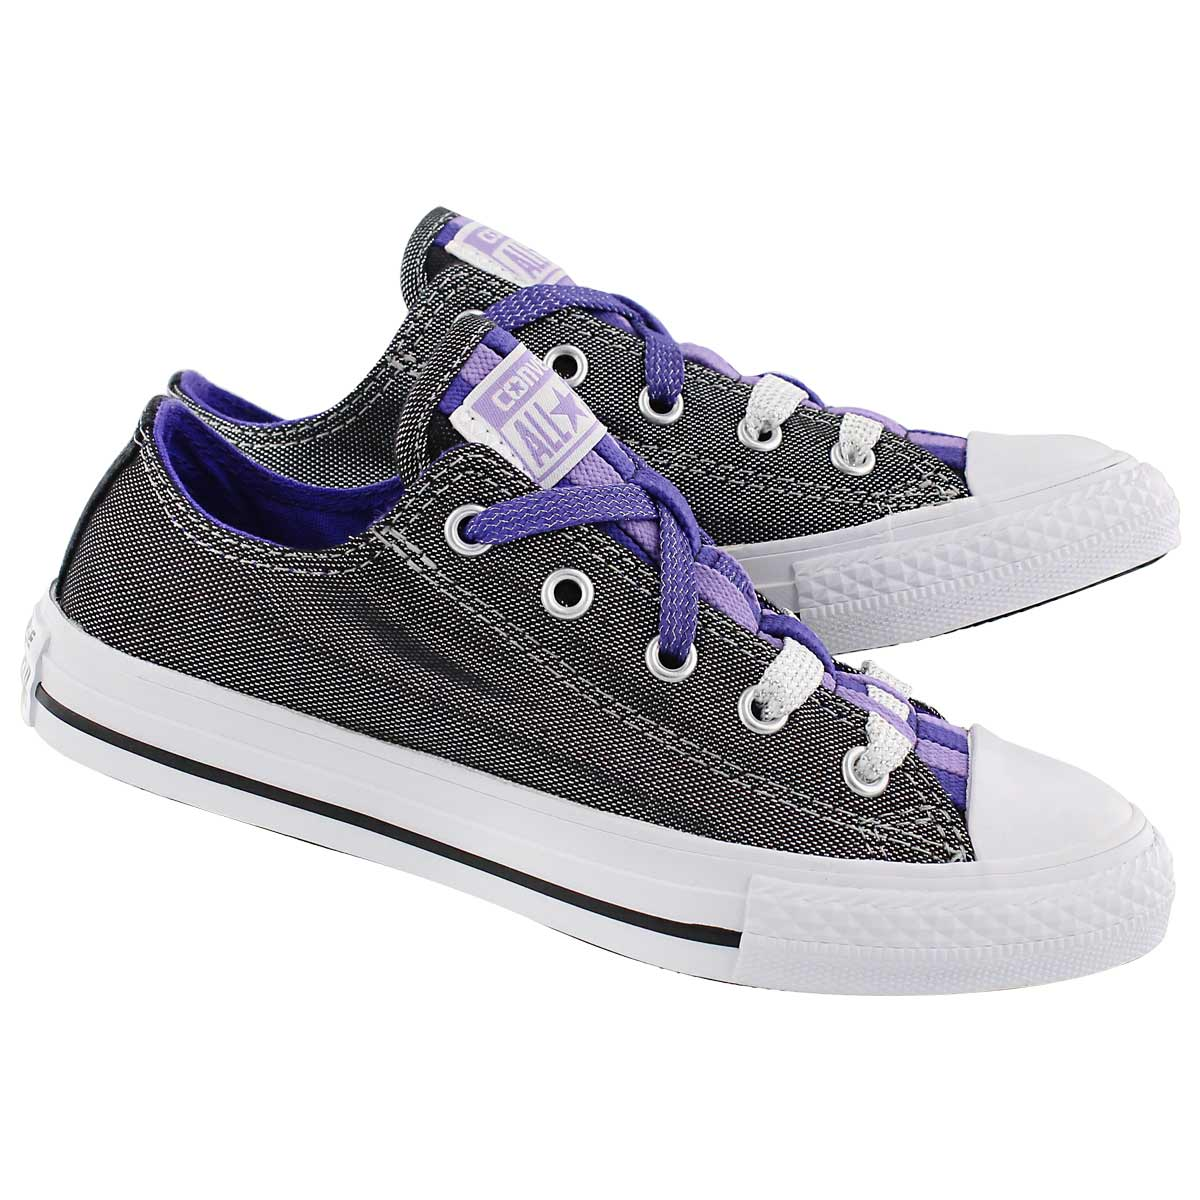 Grls CT AS Loopholes silver/grape snkr